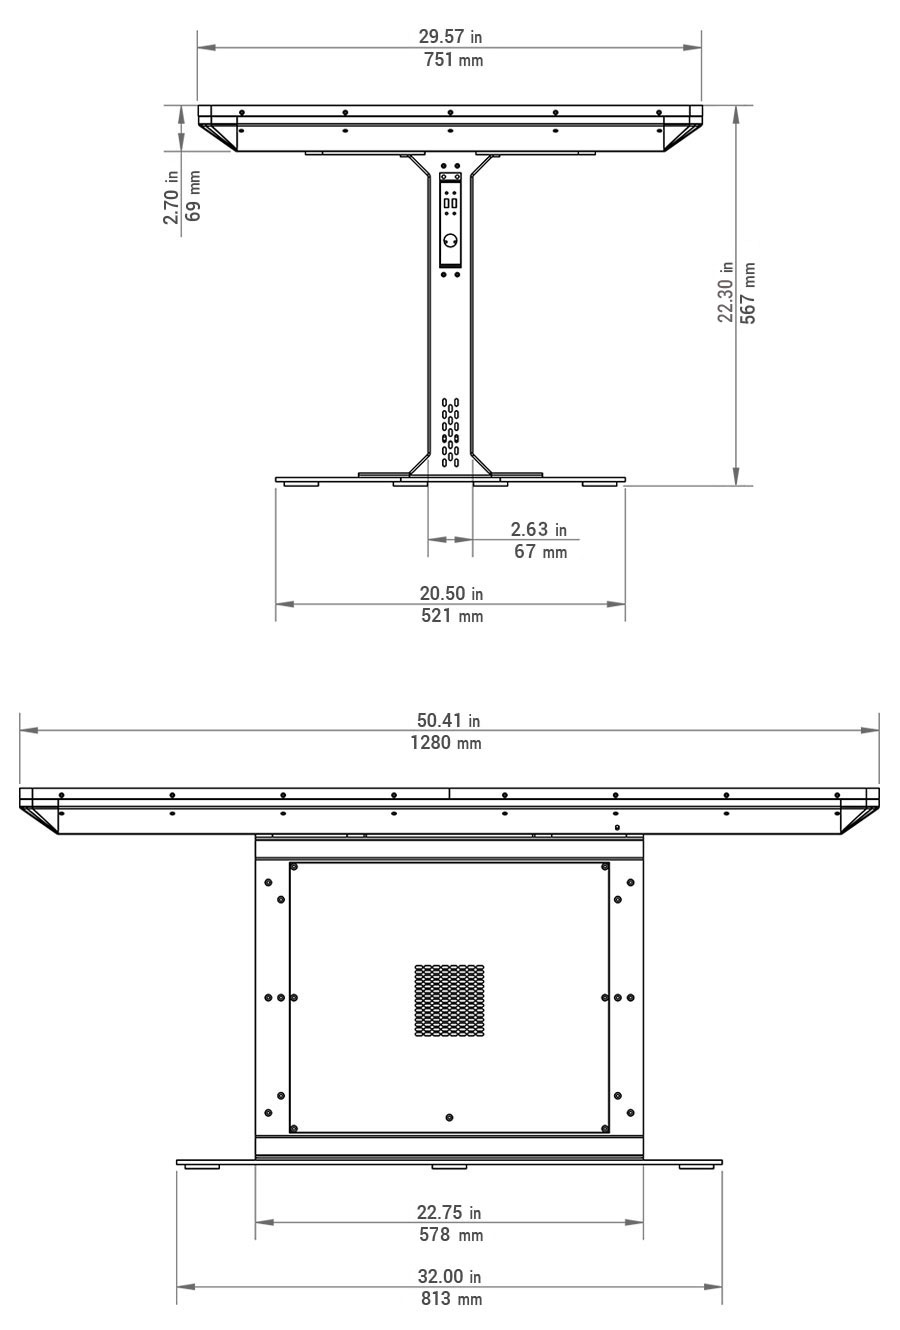 Duet Multitouch Table Dimensions